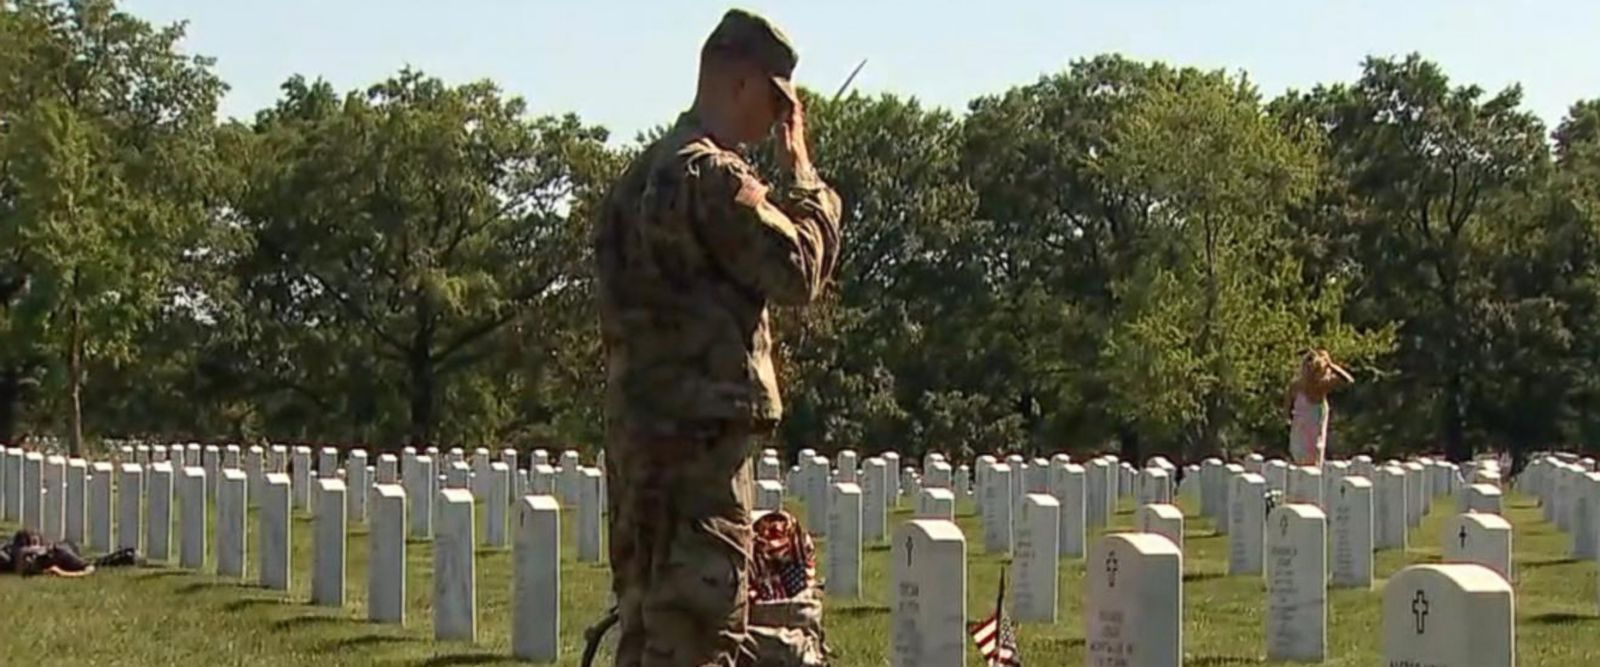 VIDEO: Walking through Arlington National Cemetery's hallowed ground